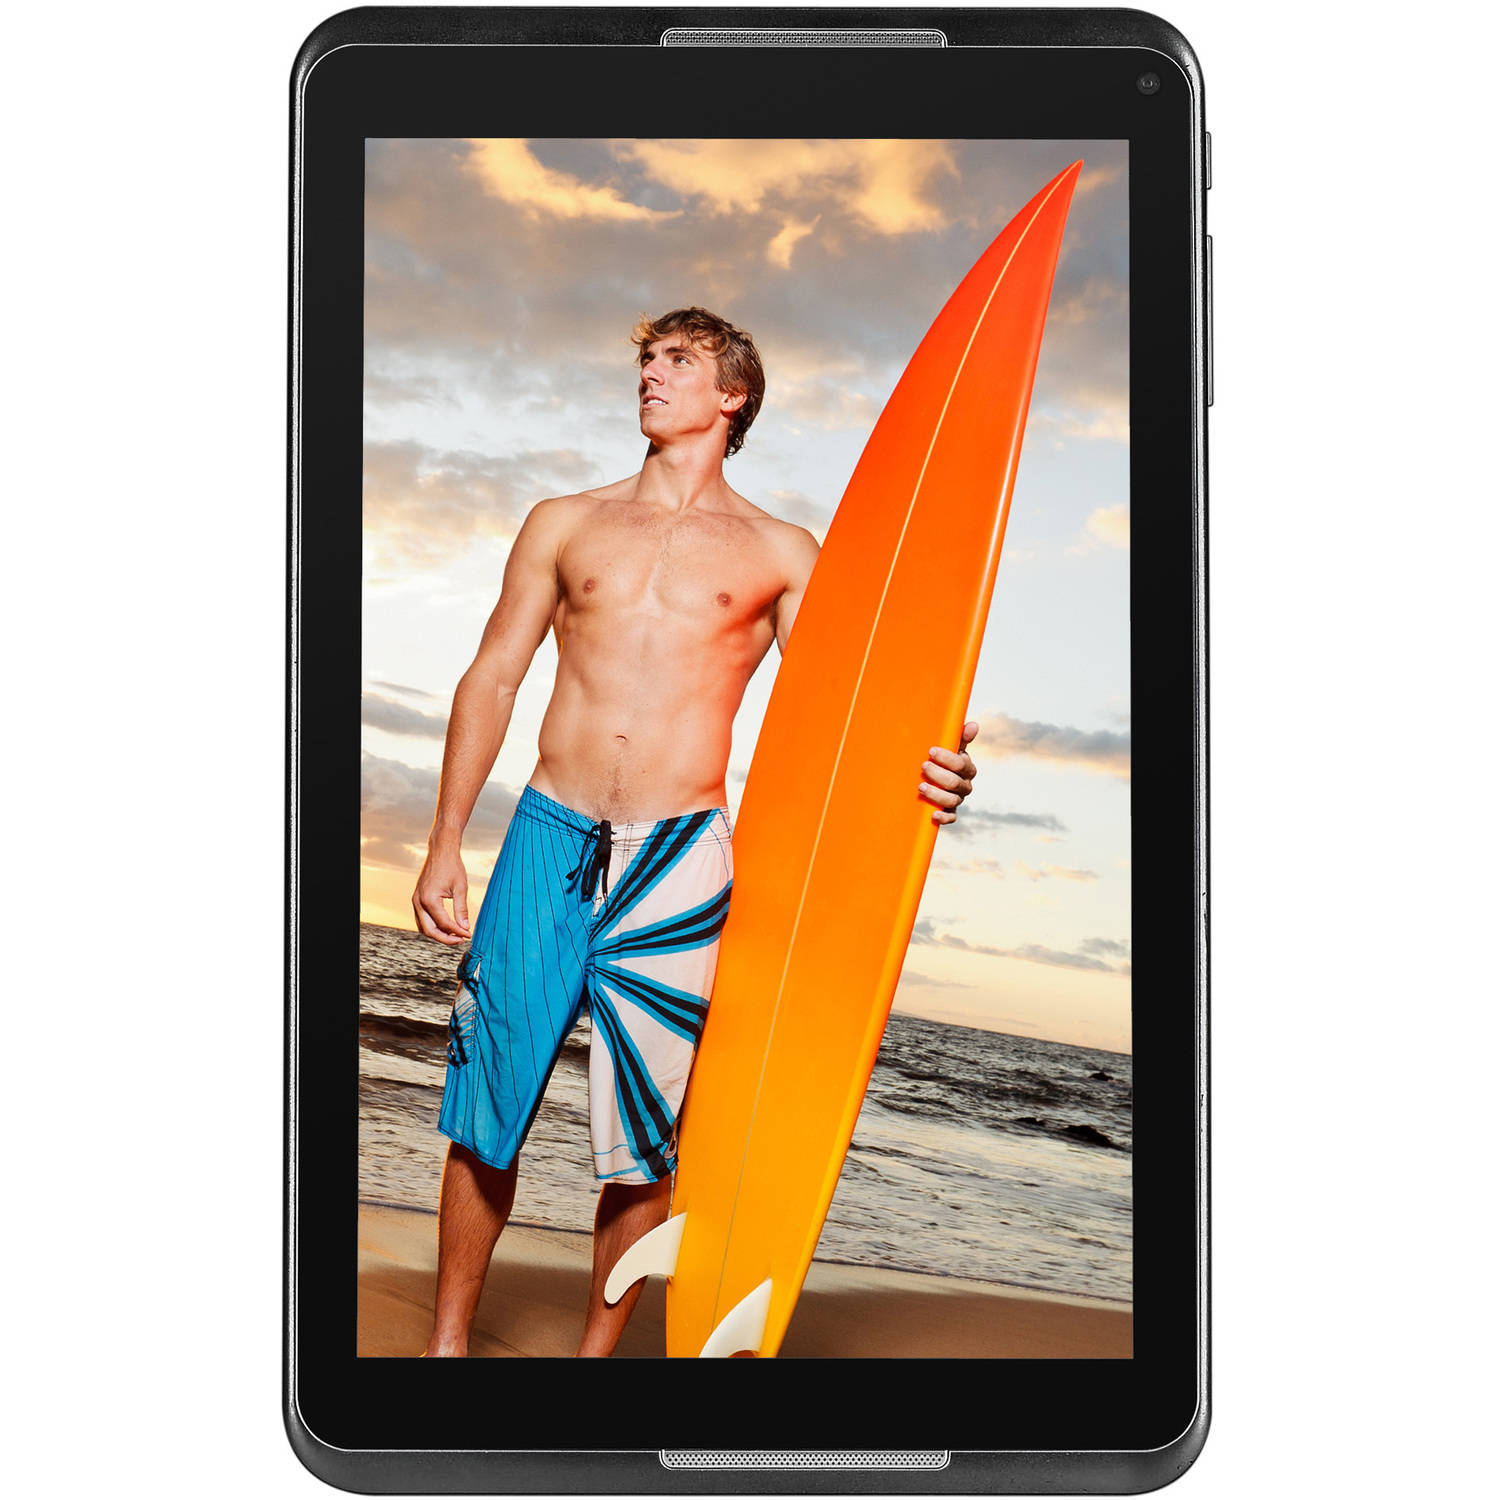 "NuVision 8"" Tablet 16GB Intel Atom Z3735G Quad-Core Processor Android 4.4"